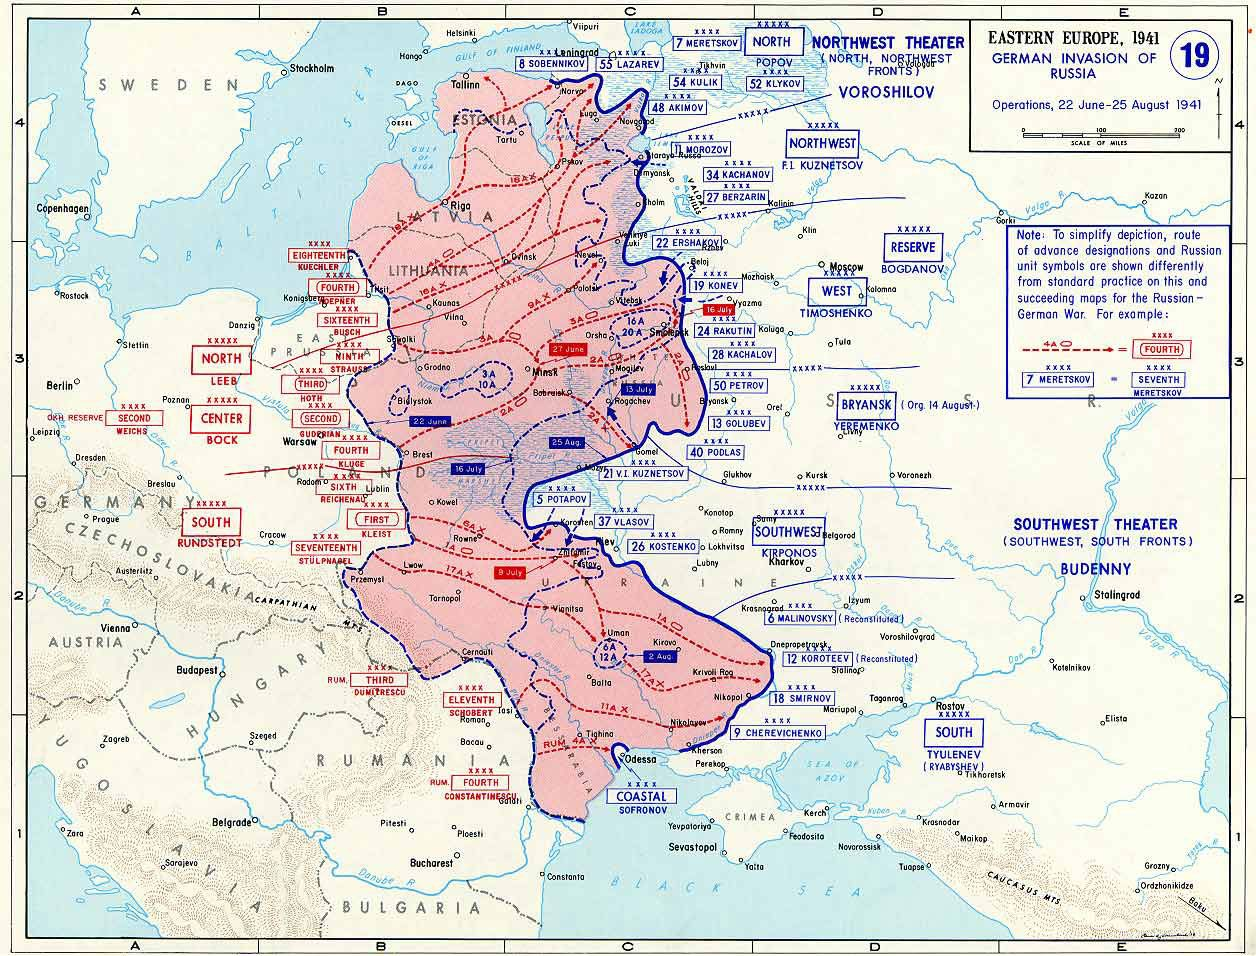 Map map of operation barbarossa 22 jun to 25 aug 1941 map map of operation barbarossa 22 jun to 25 aug 1941 operation barbarossa gumiabroncs Choice Image